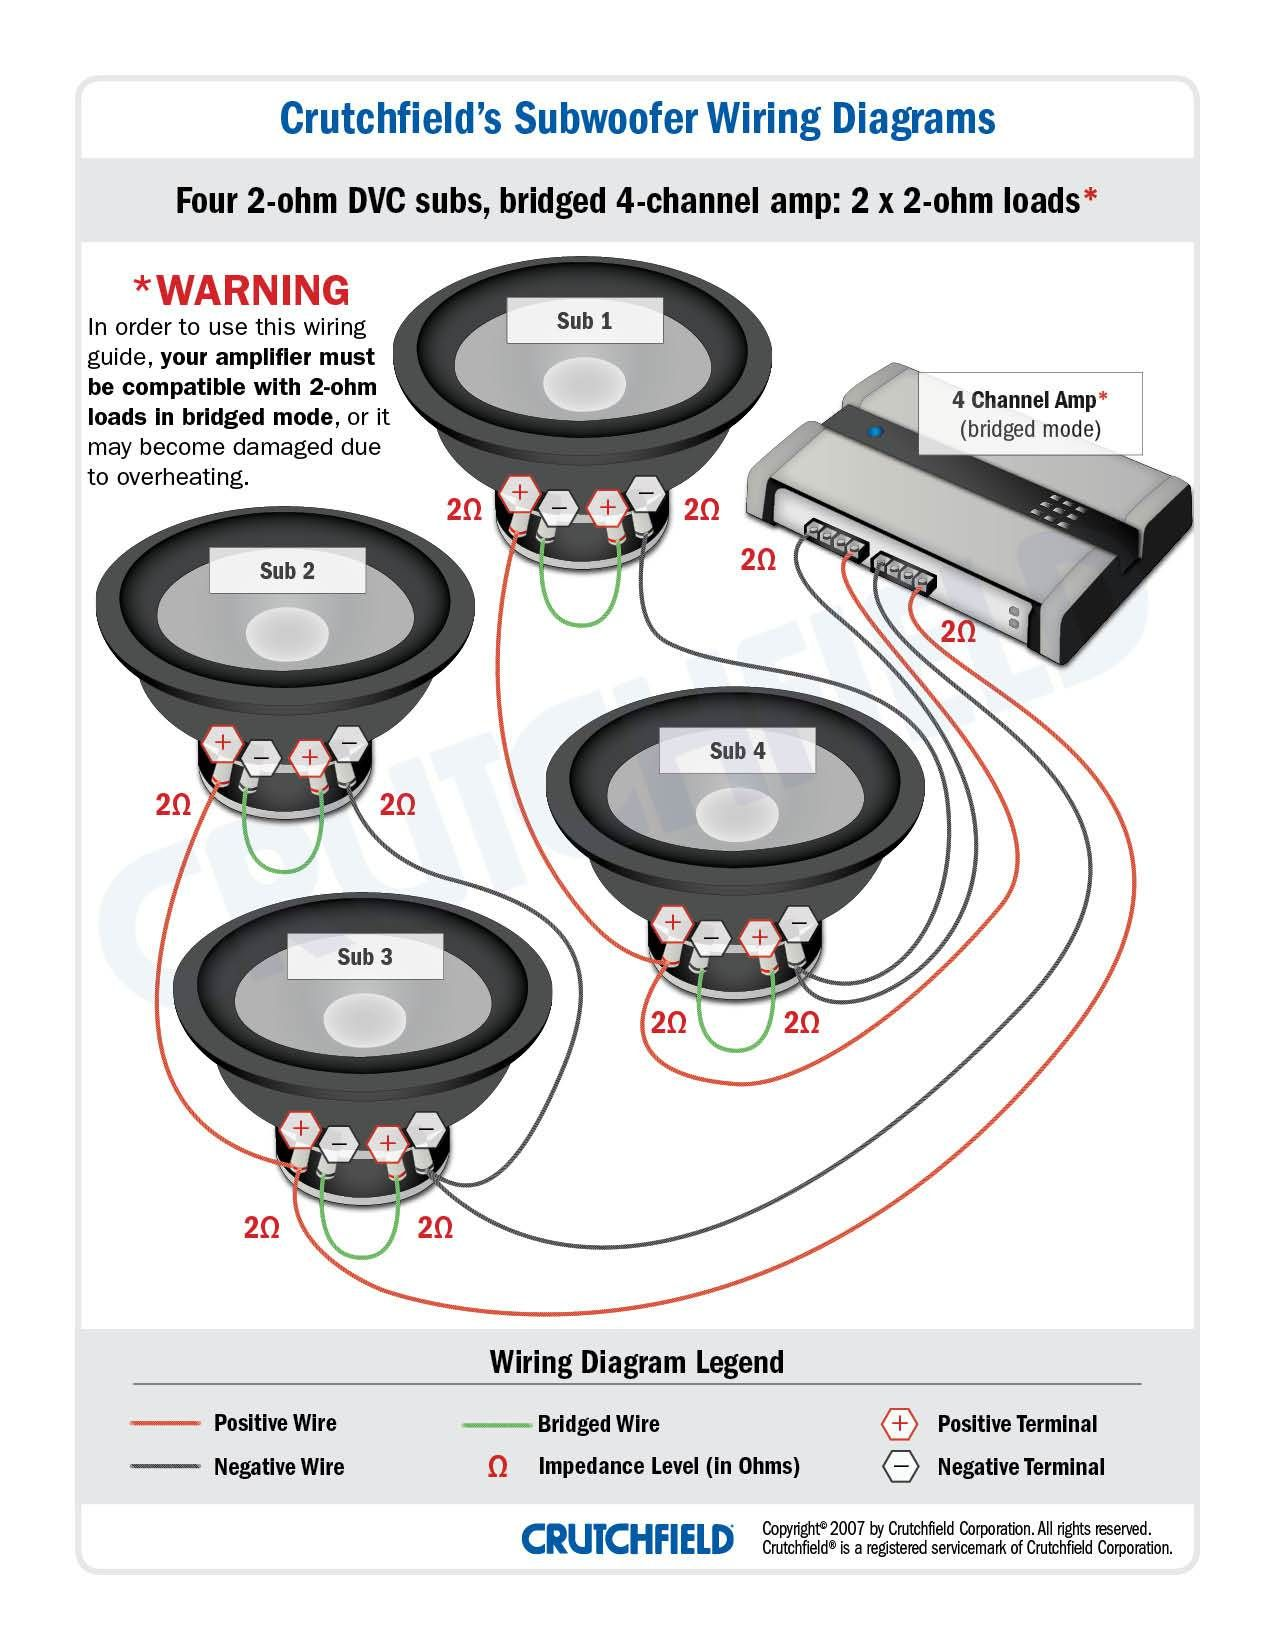 3 4 Ohm Subs Wiring Diagram Libraries Kubota Denso 131800 8012 Subwoofers Diagrams For Dj Third Levelsubwoofer Throughout Dual Voice